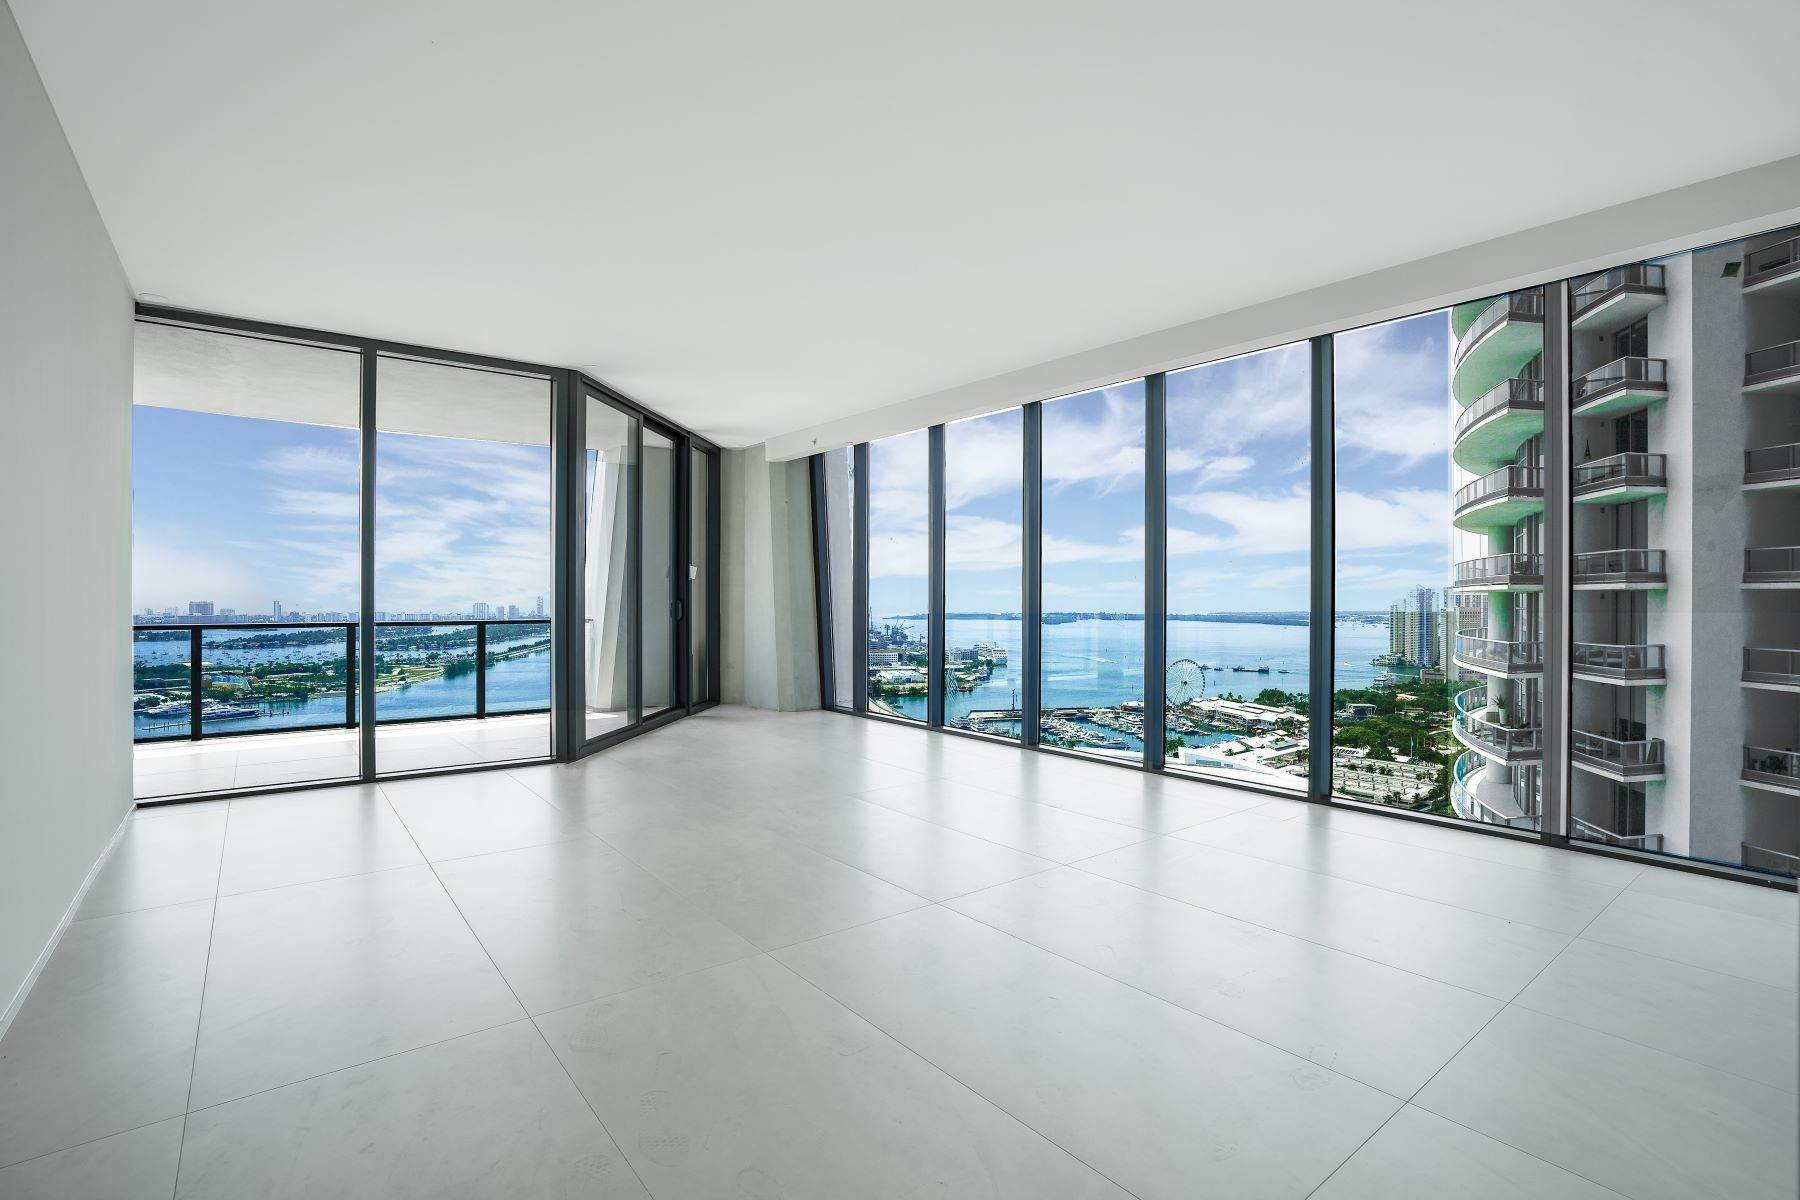 Condominiums en 1000 Biscayne Blvd, 3701 Miami, Florida 33132 Estados Unidos